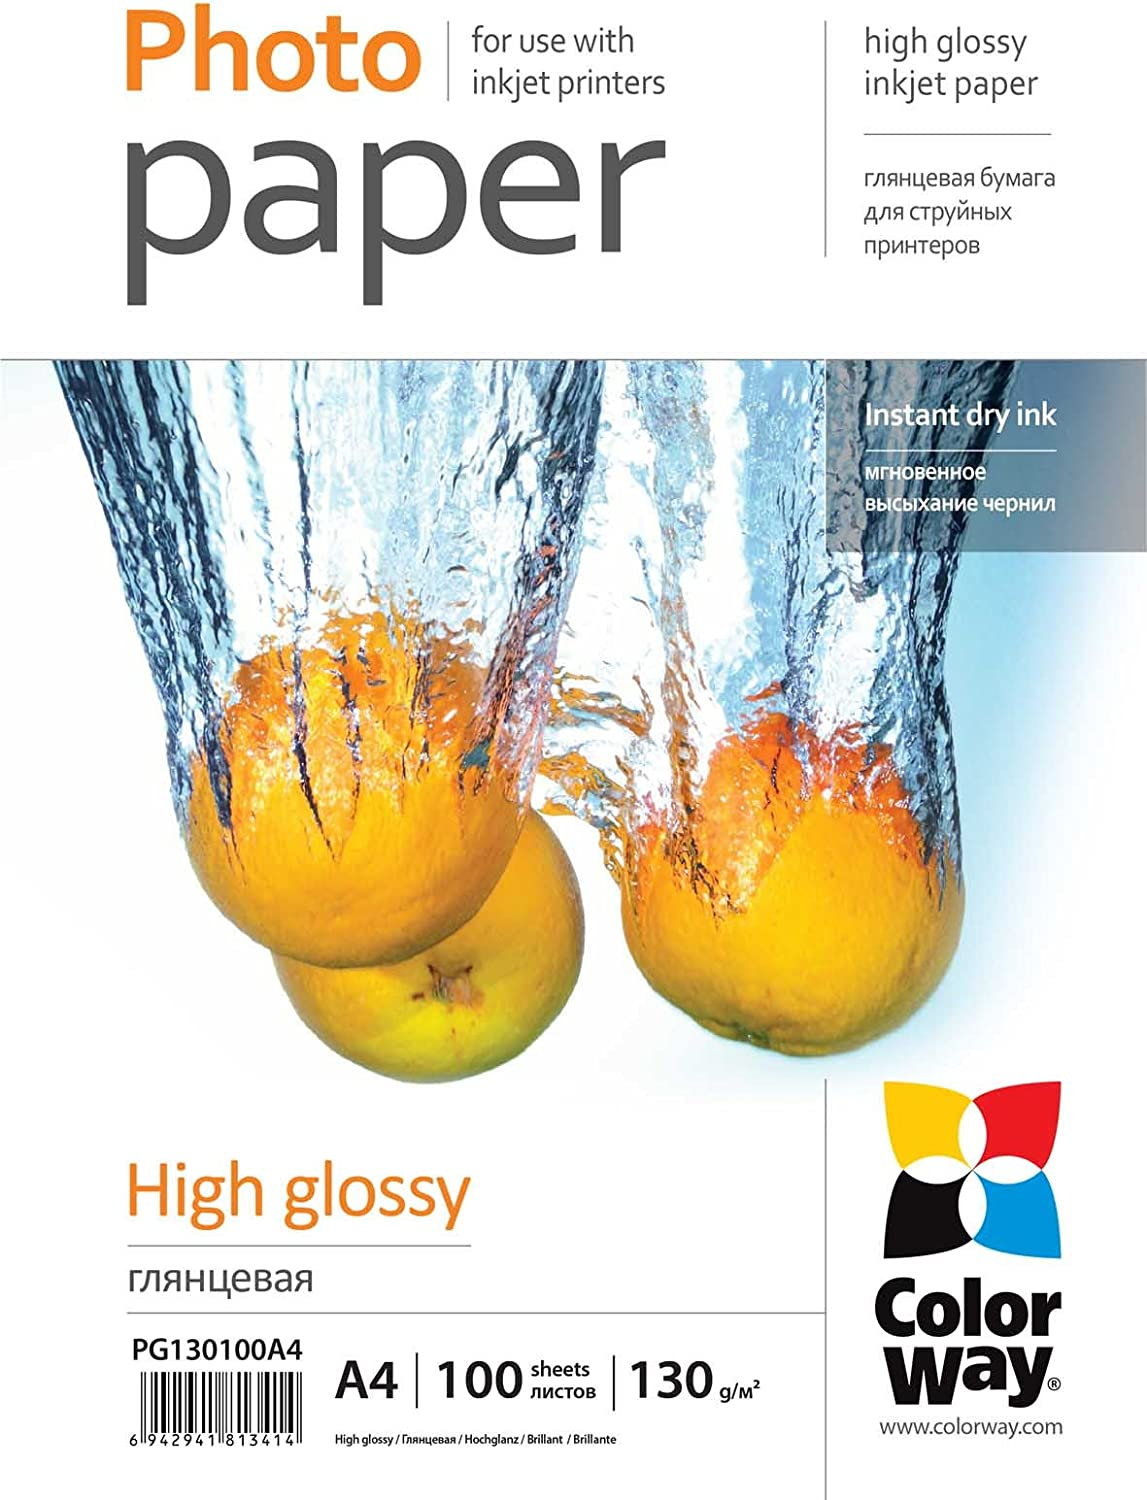 PG1800204R 10 cm x 15 cm 20 Sheets Photo Paper ColorWay High Glossy 180 g//m/² 4 in х 6 in